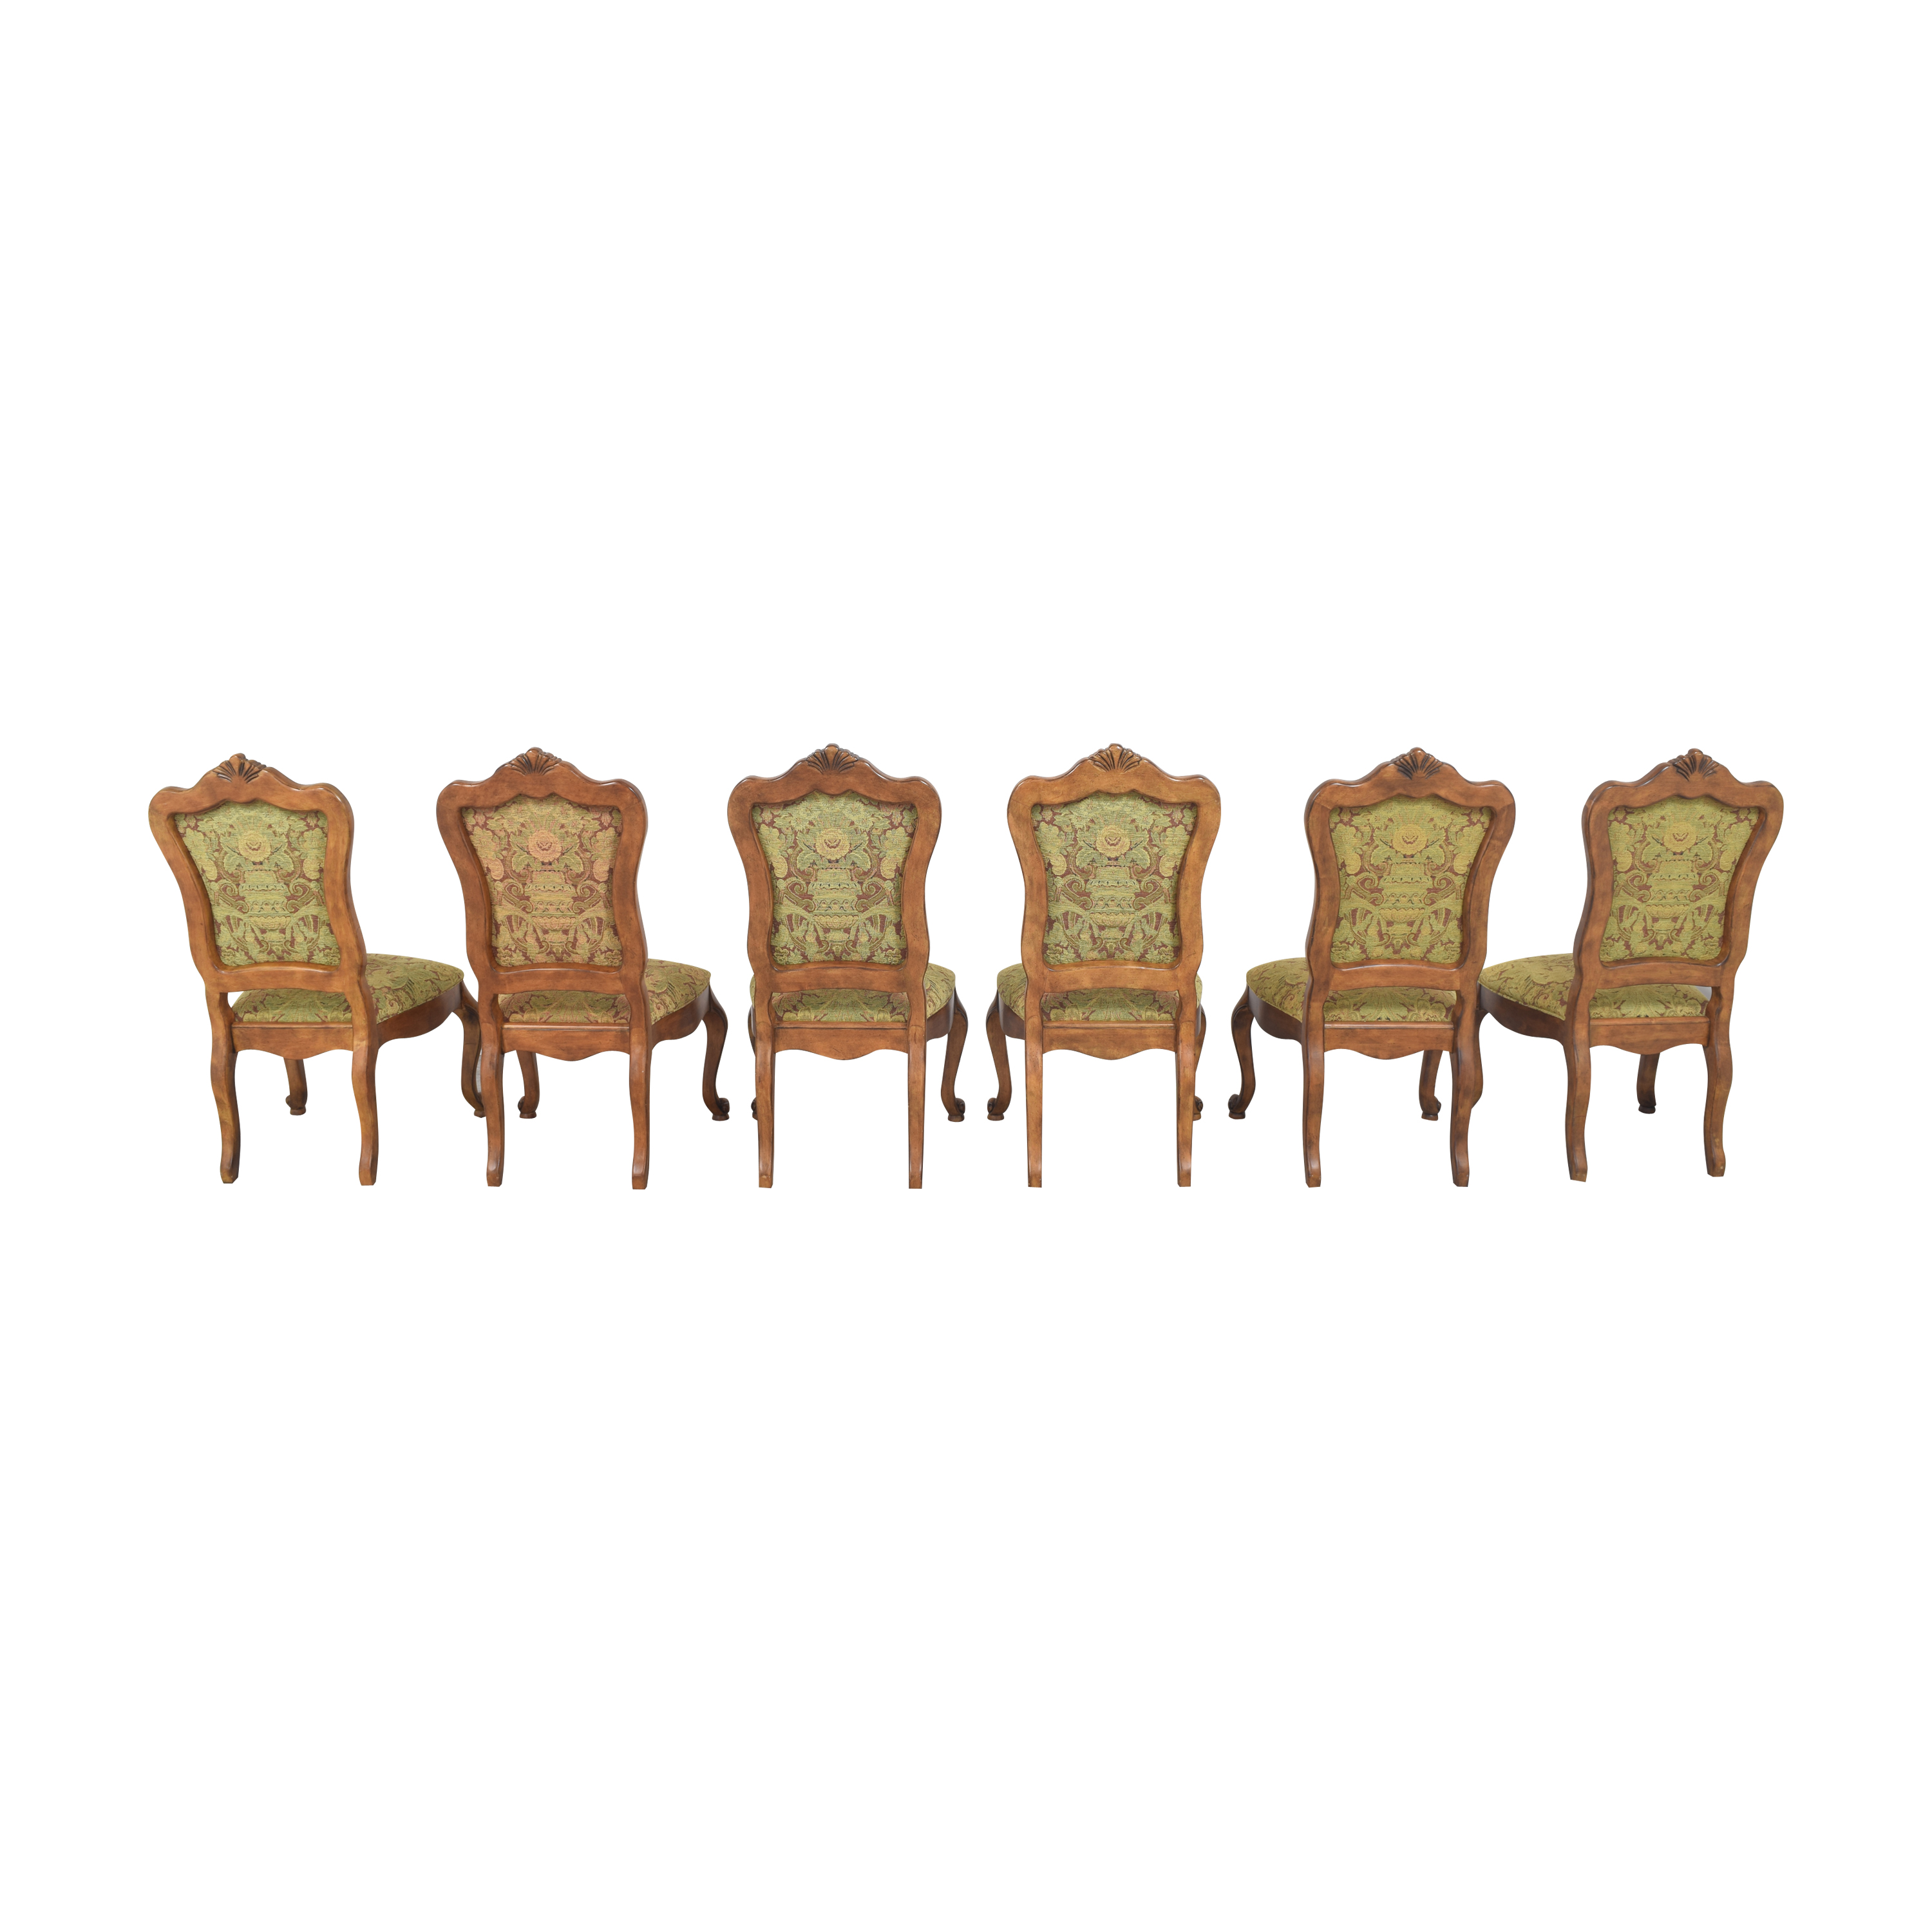 Ethan Allen Ethan Allen Tuscany Upholstered Dining Chairs Chairs